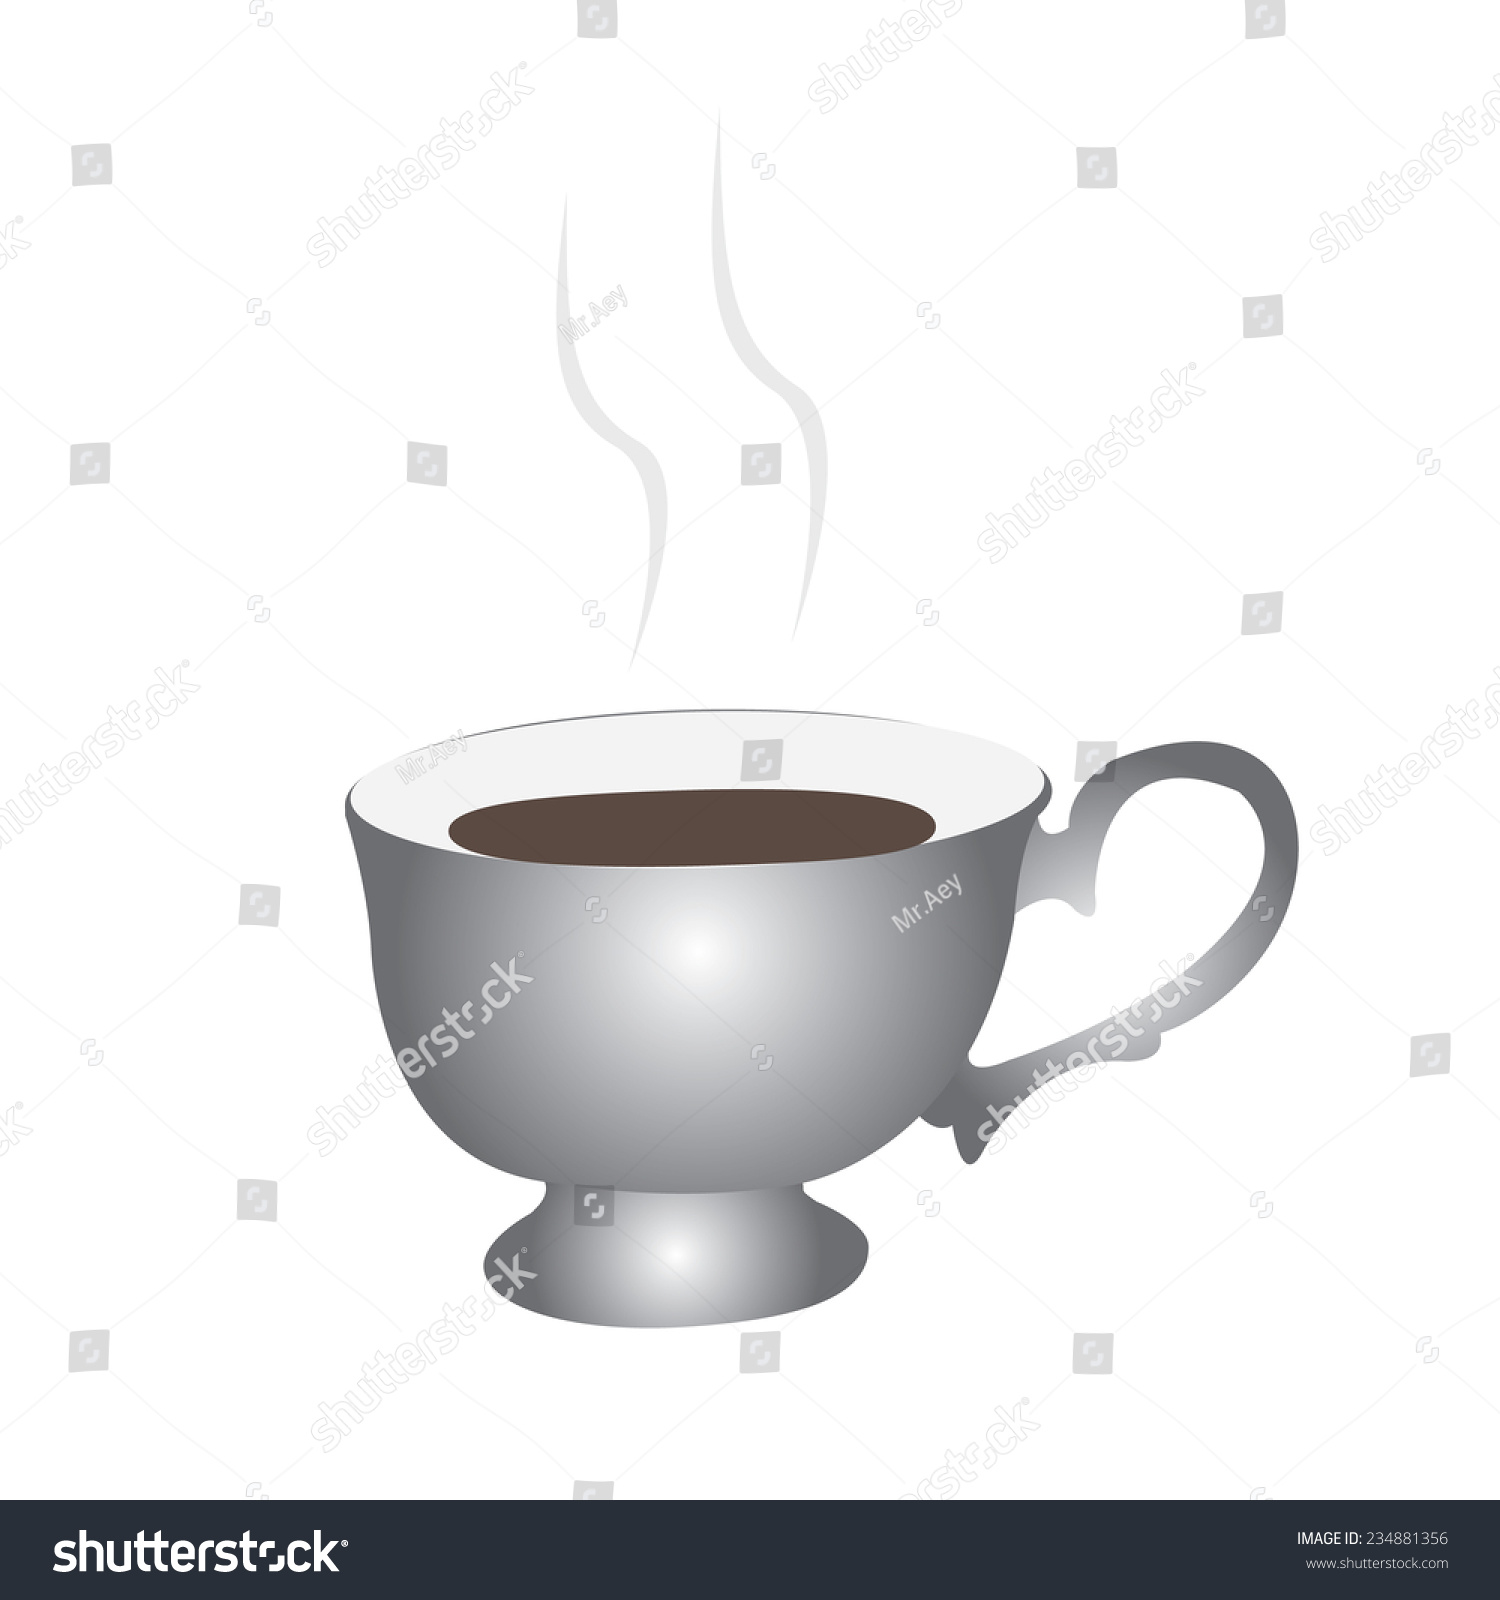 Coffee cup vector free - Coffee Cup Vector Illustration On White Coffee Tea Etc